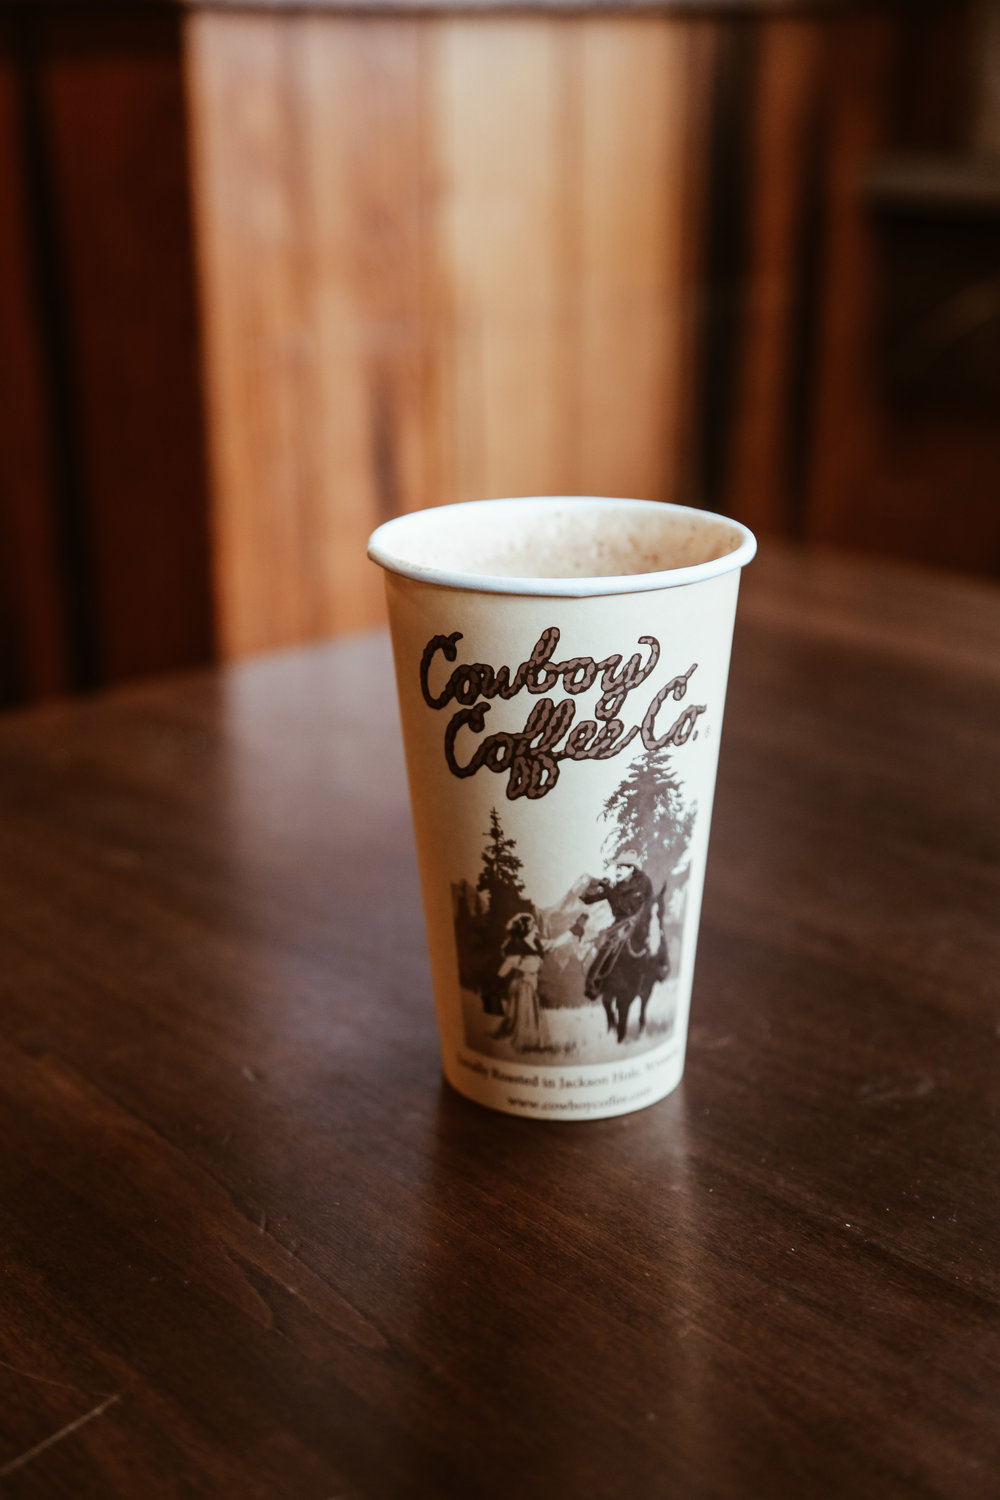 The Honey Badger Latte at Cowboy Coffee